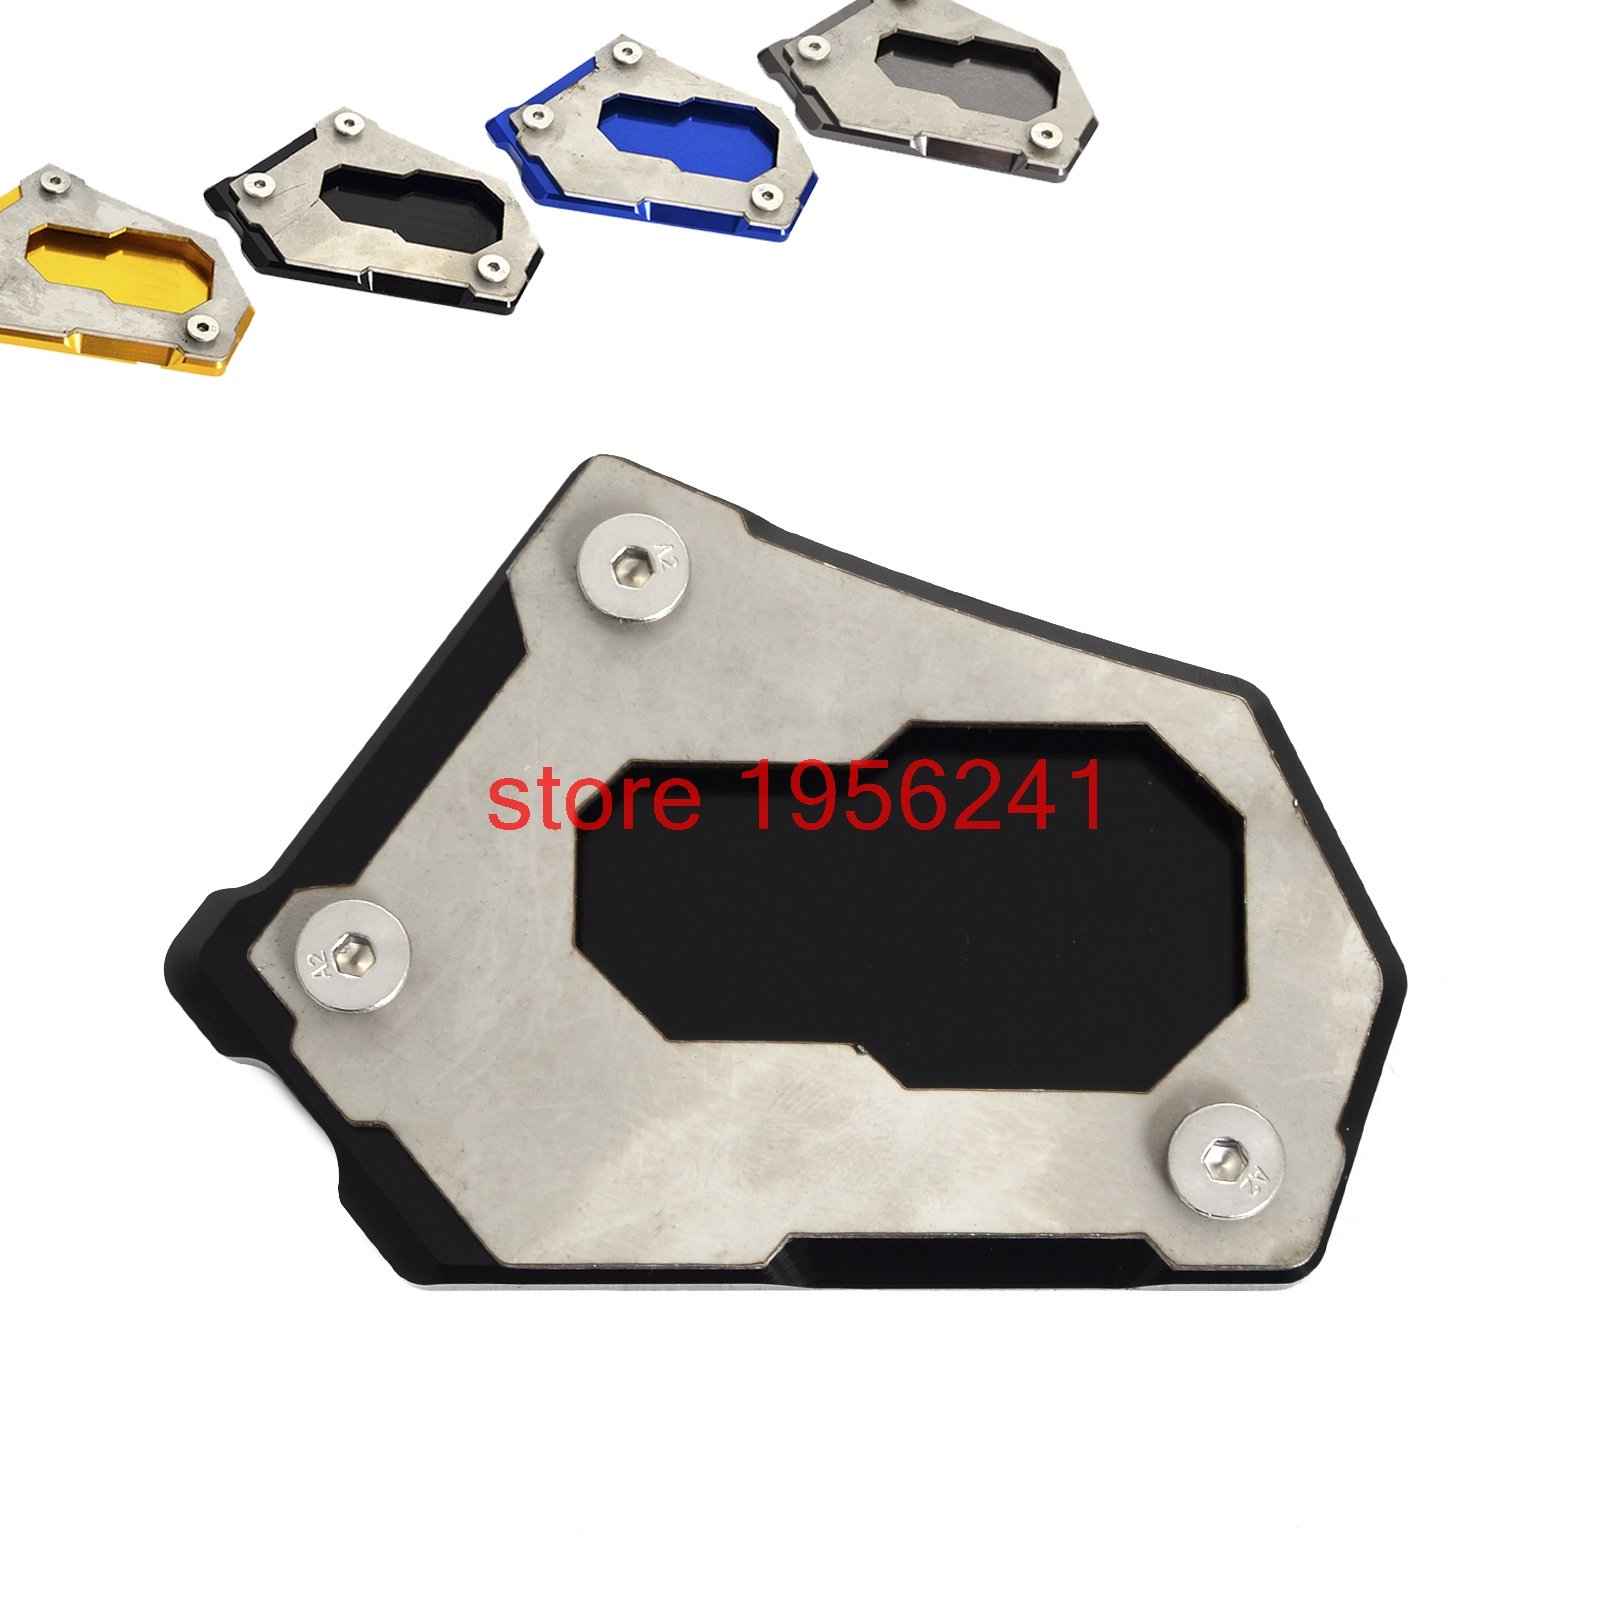 NICECNC CNC Side Kickstand Stand Extension Plate For BMW R1200GS Water Cooled 2013 2014 2015 2016 2017 R1200 GS